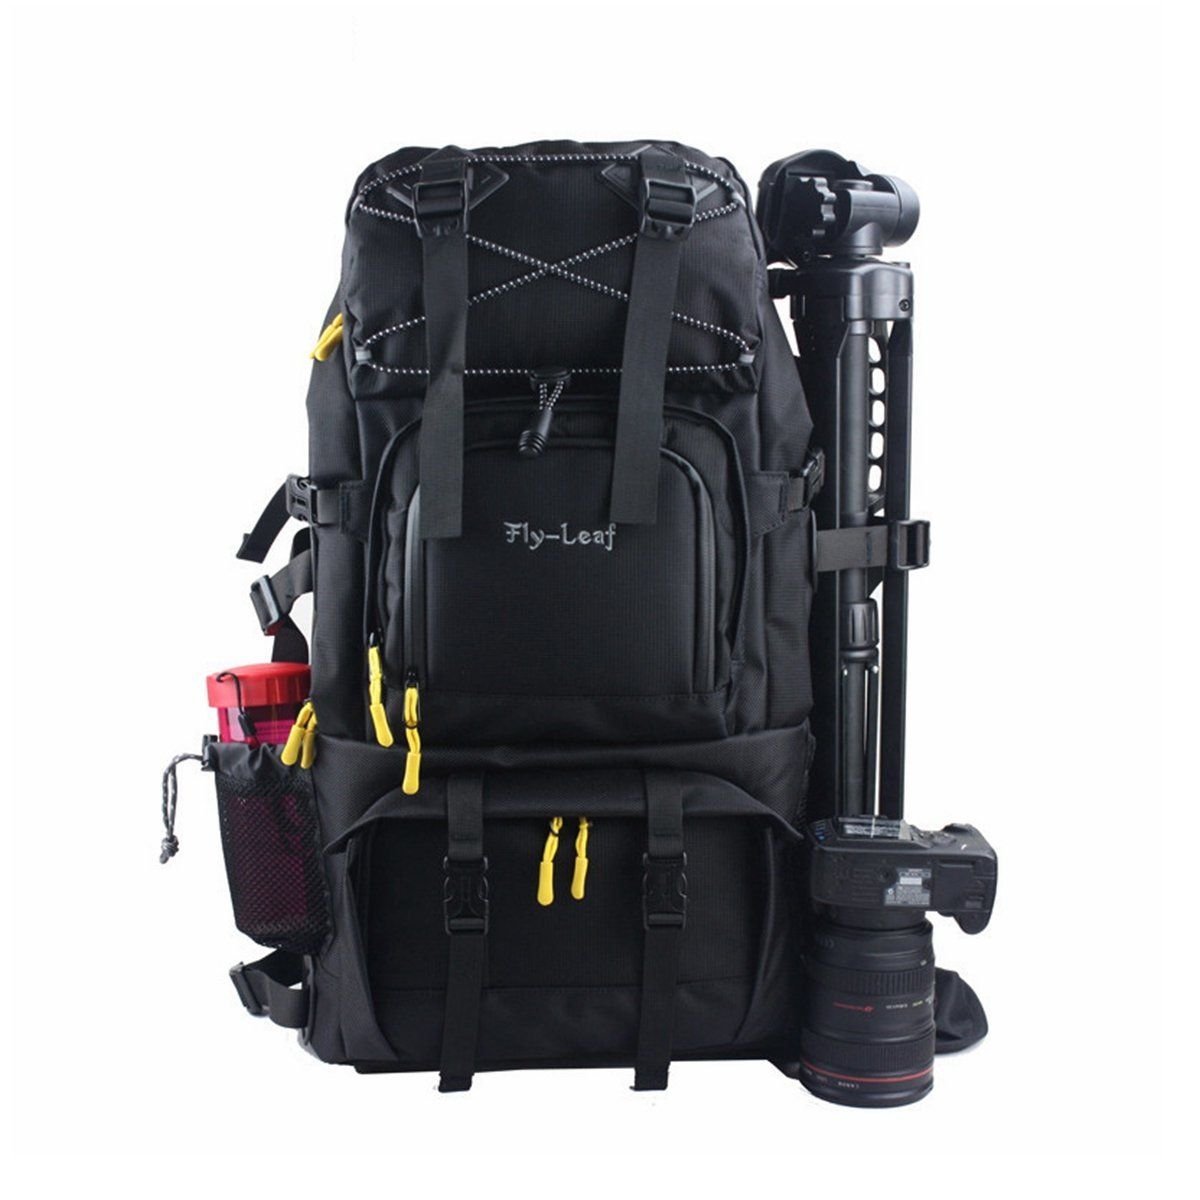 abf215bcab26 G-raphy Camera Backpack Bag Hiking Travel Backpack for all DSLR SLR Cameras